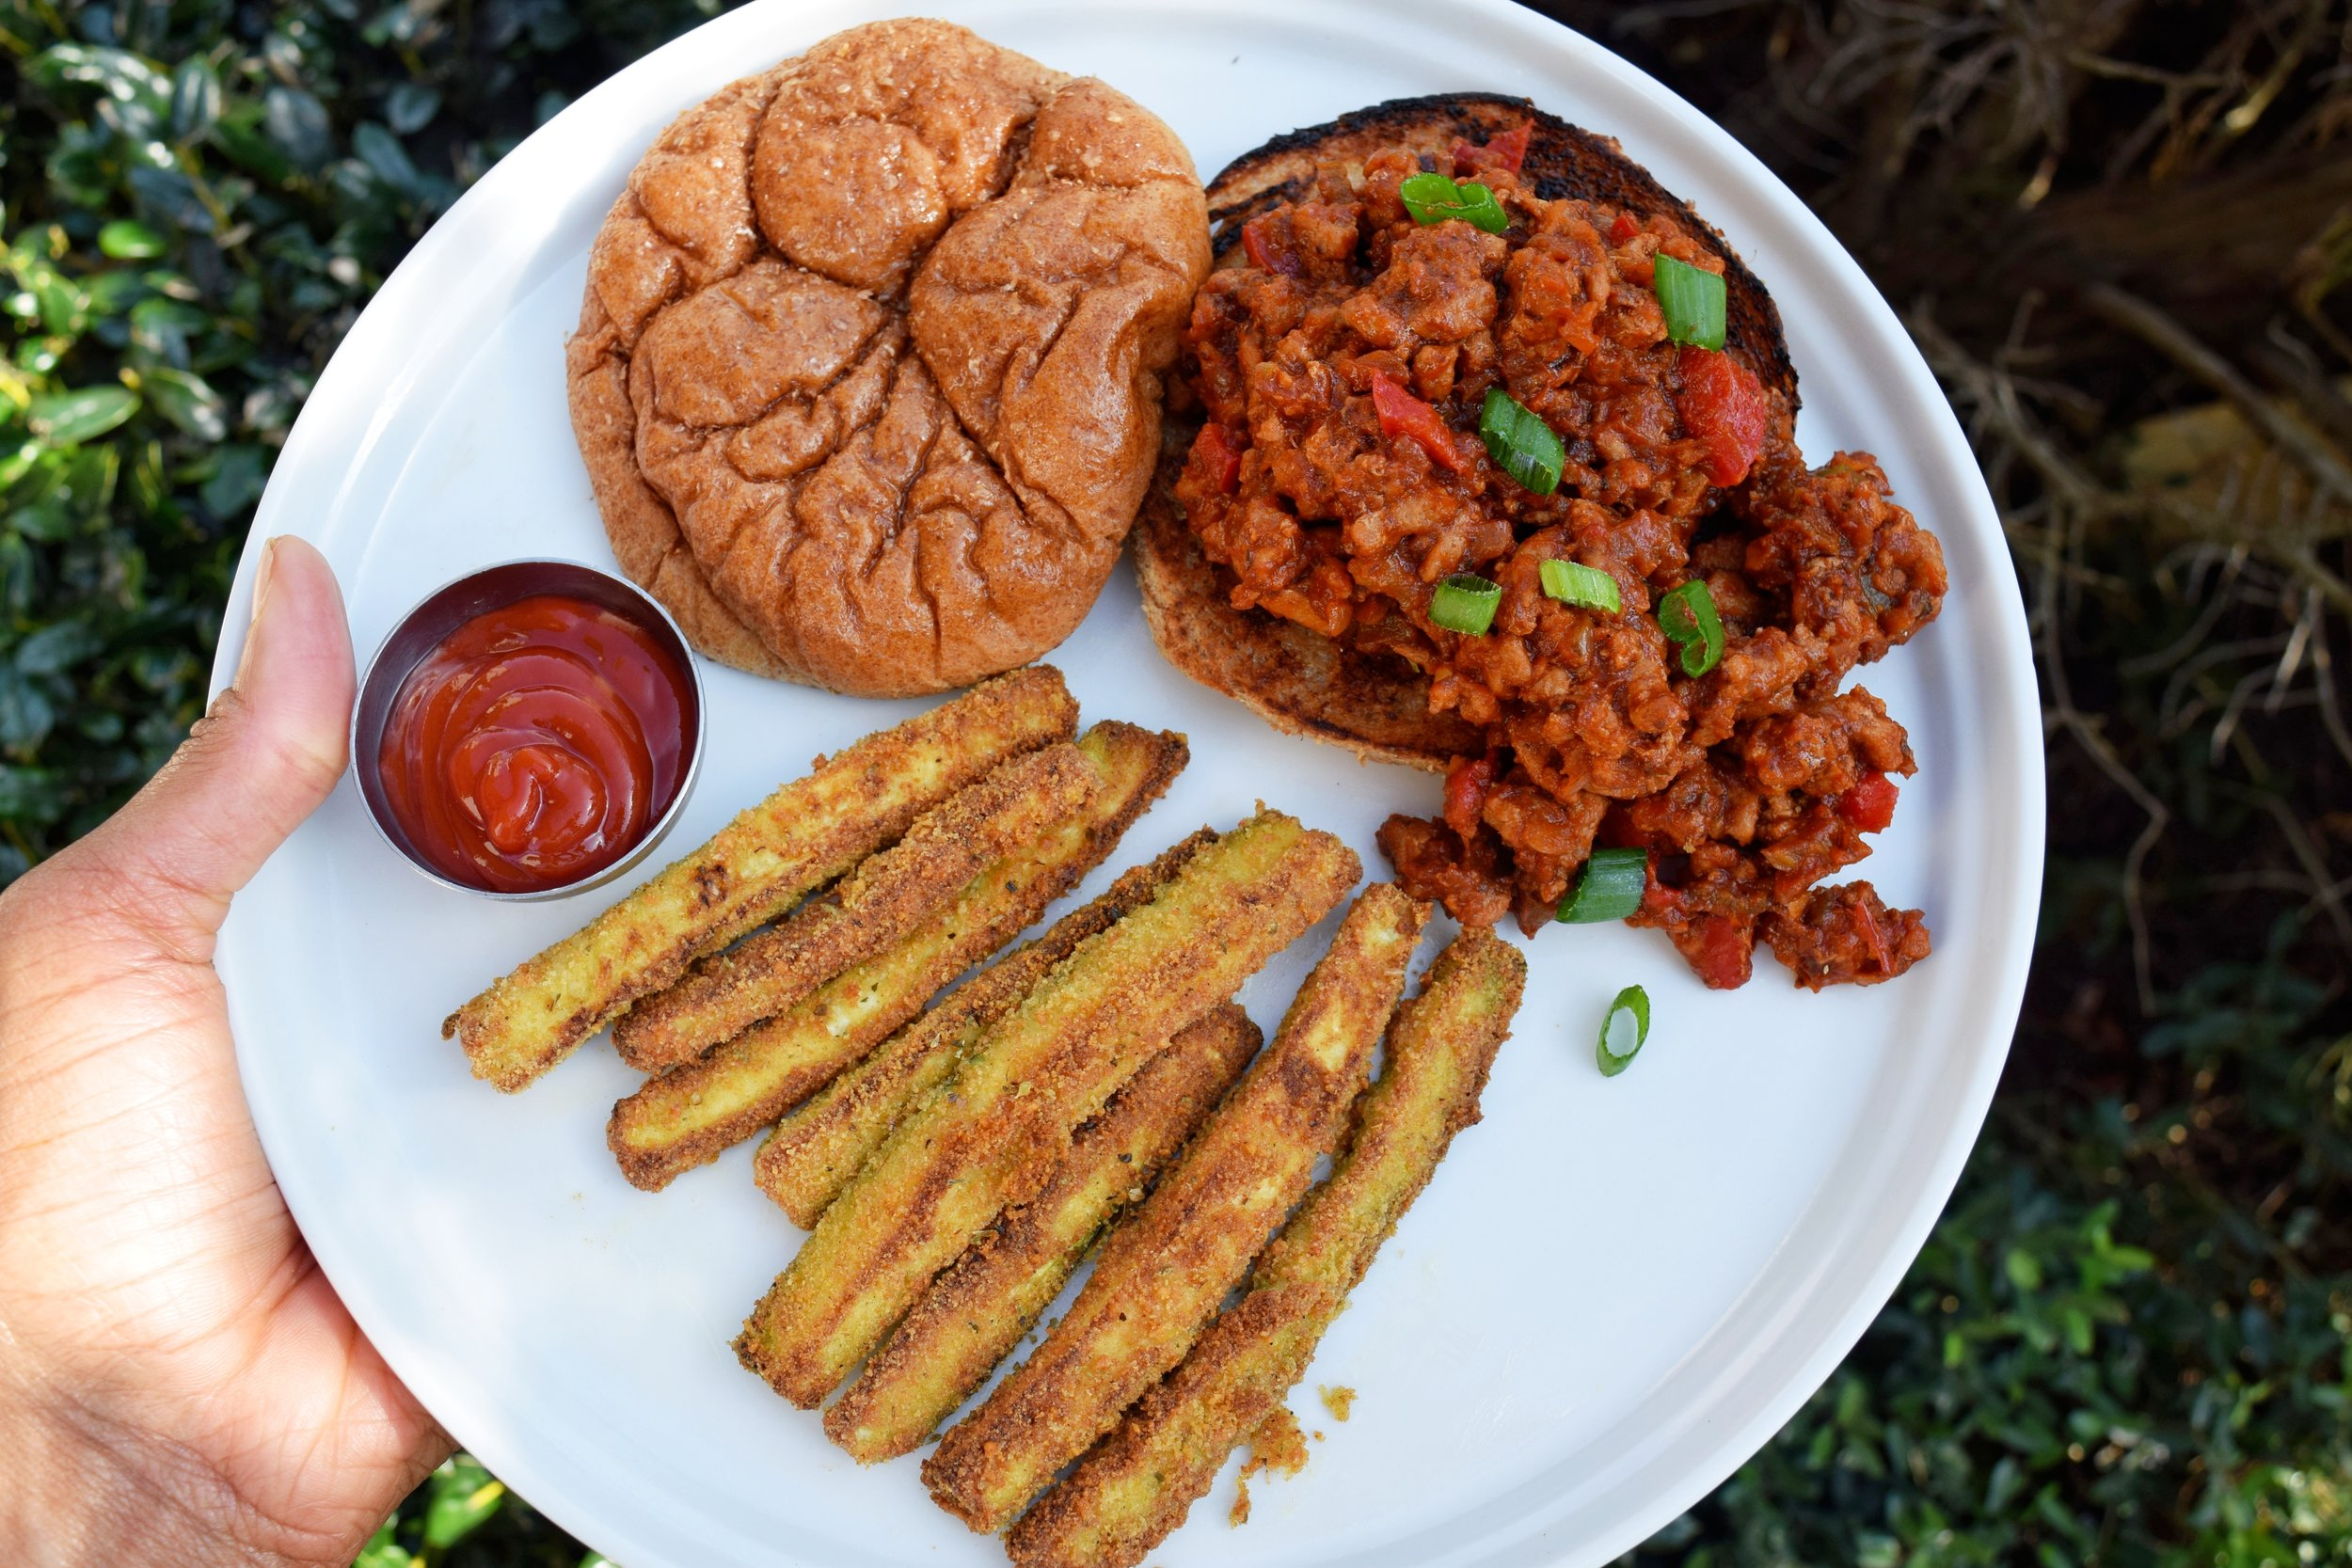 Turkey Sloppy Joes + Air Fryer Parmesan Zucchini Fries